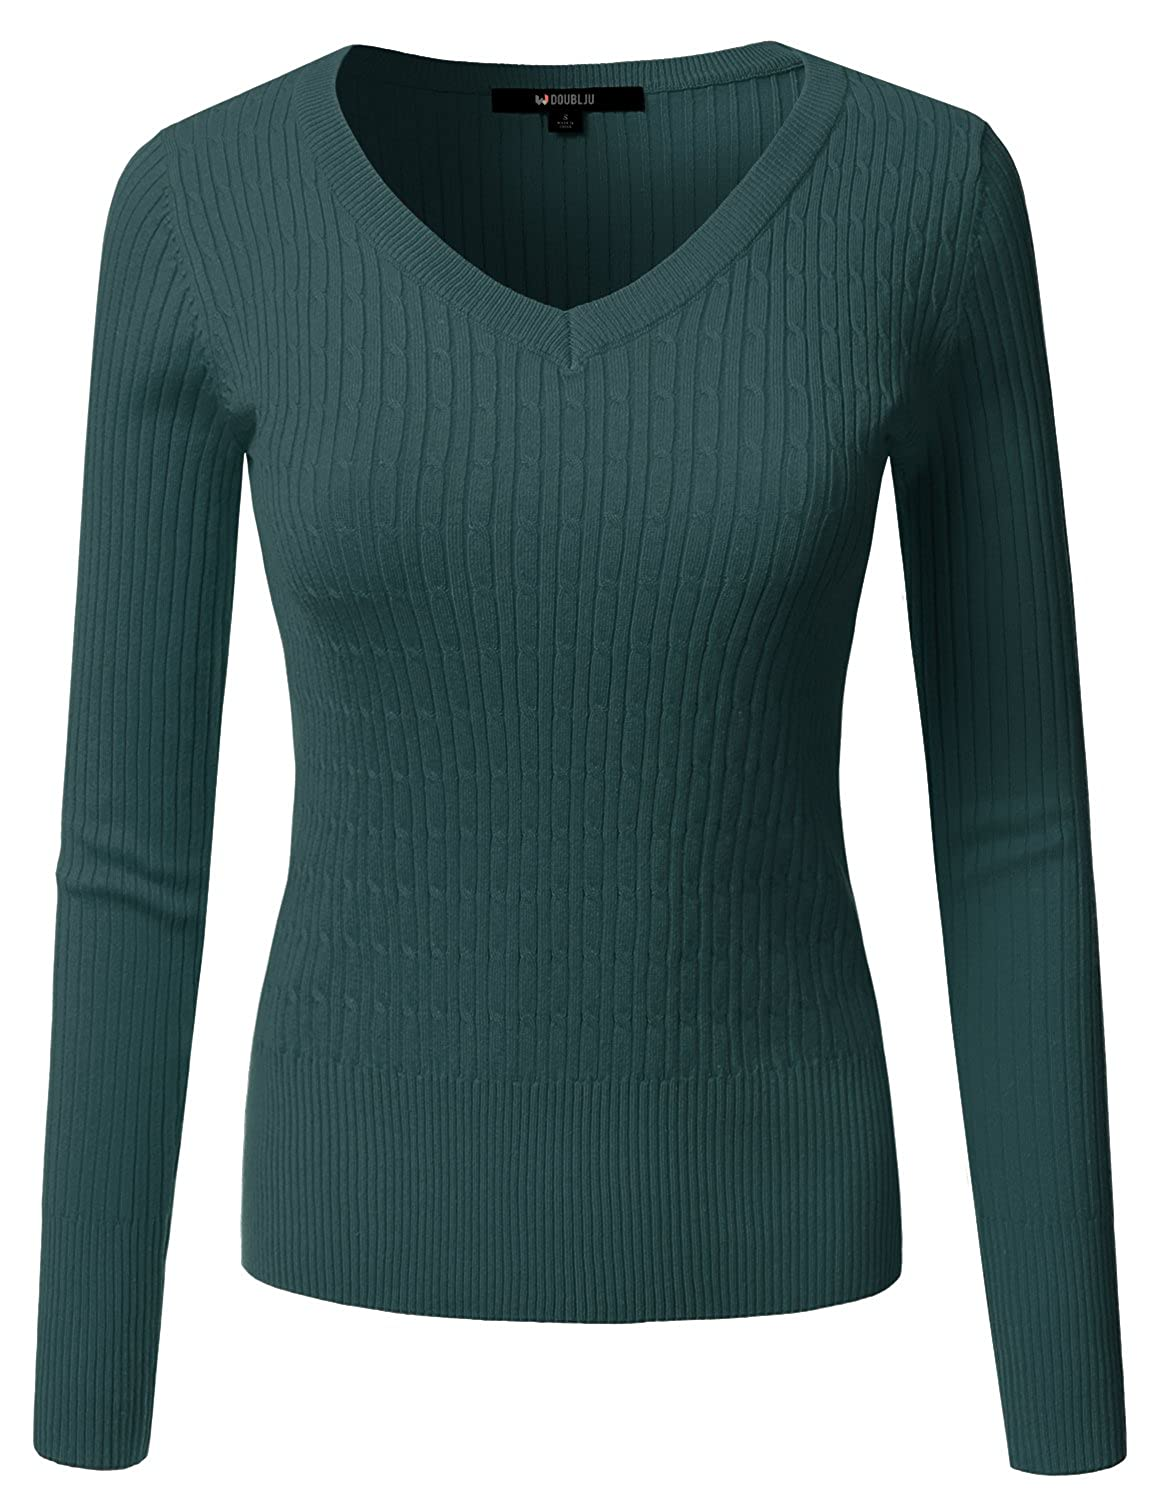 Awoswl0226_dustysage Doublju Slim Fit Twisted Cable Knit VNeck Sweater For Women